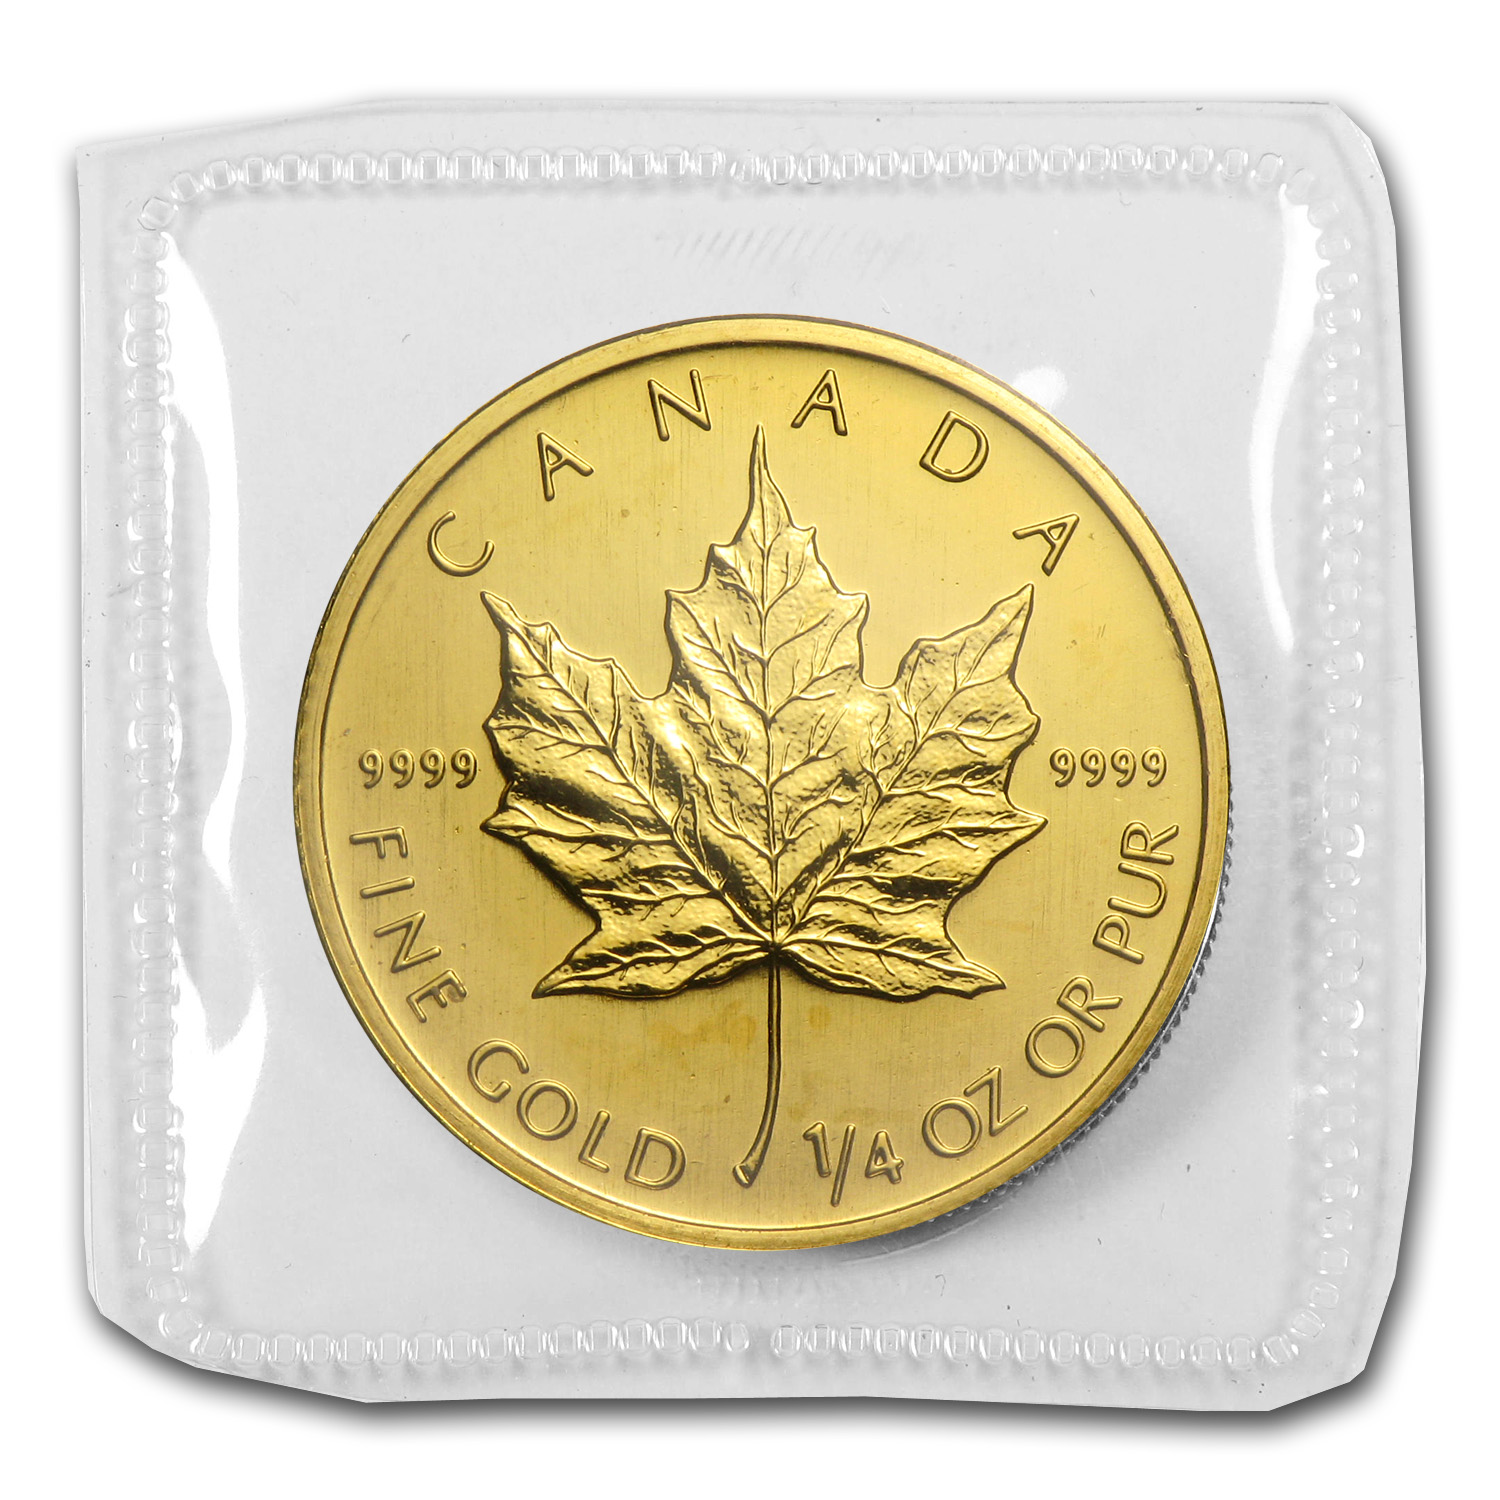 2003 1/4 oz Gold Canadian Maple Leaf